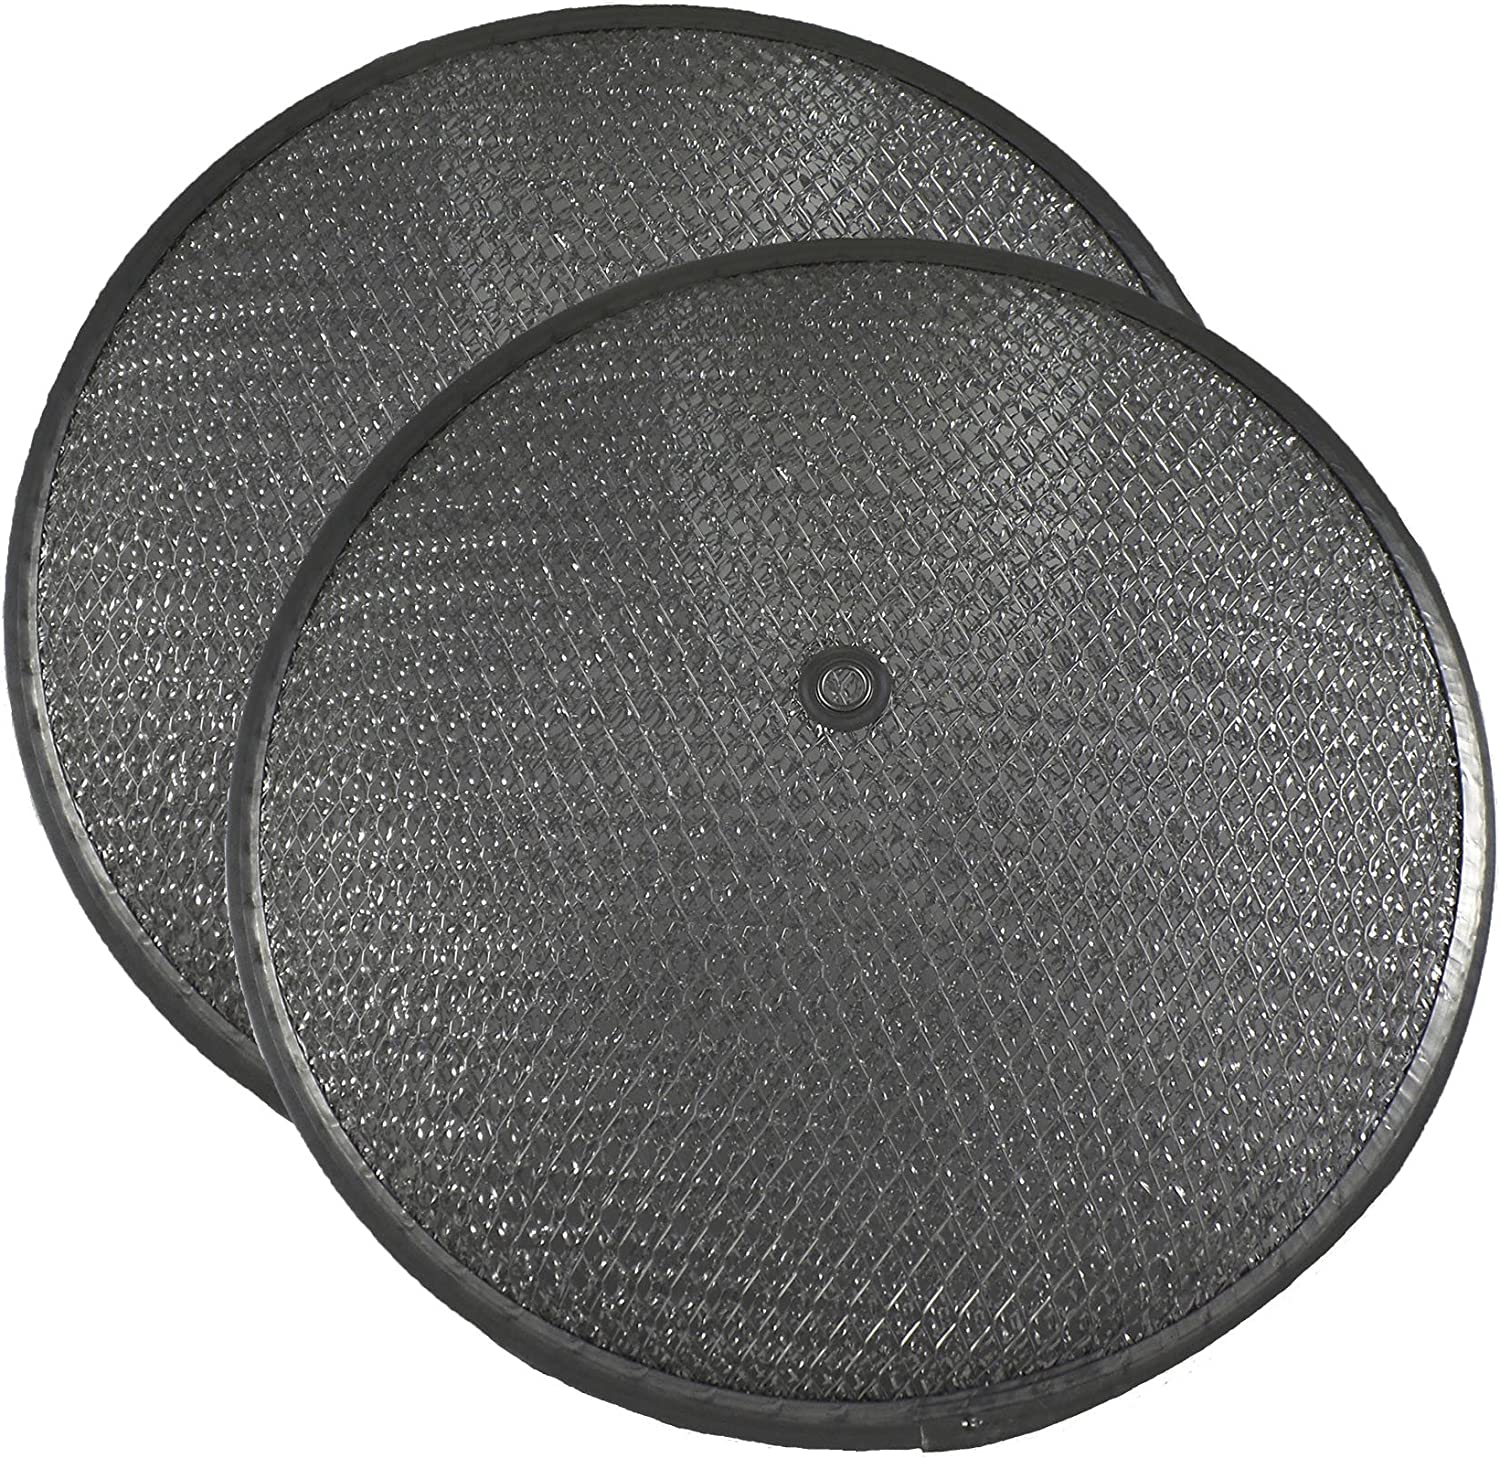 2 PACK Air Filter Factory 10-1/2 Inches x 1-1/4 Inch Rise With Center Hole Range Hood Aluminum Grease Dome Filters